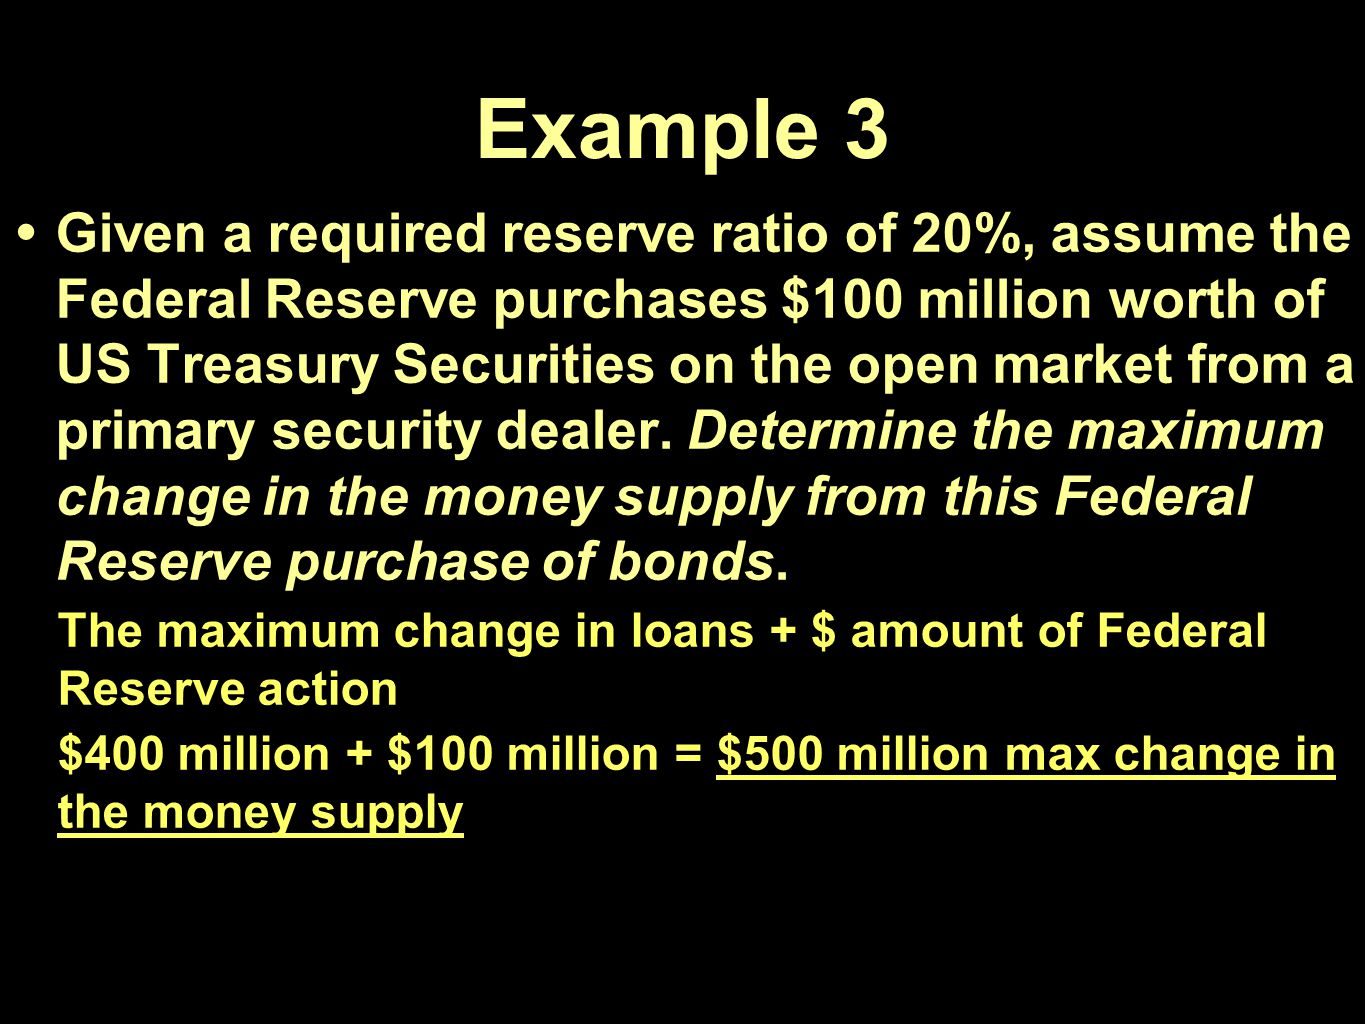 Example 3 Given a required reserve ratio of 20%, assume the Federal Reserve purchases $100 million worth of US Treasury Securities on the open market